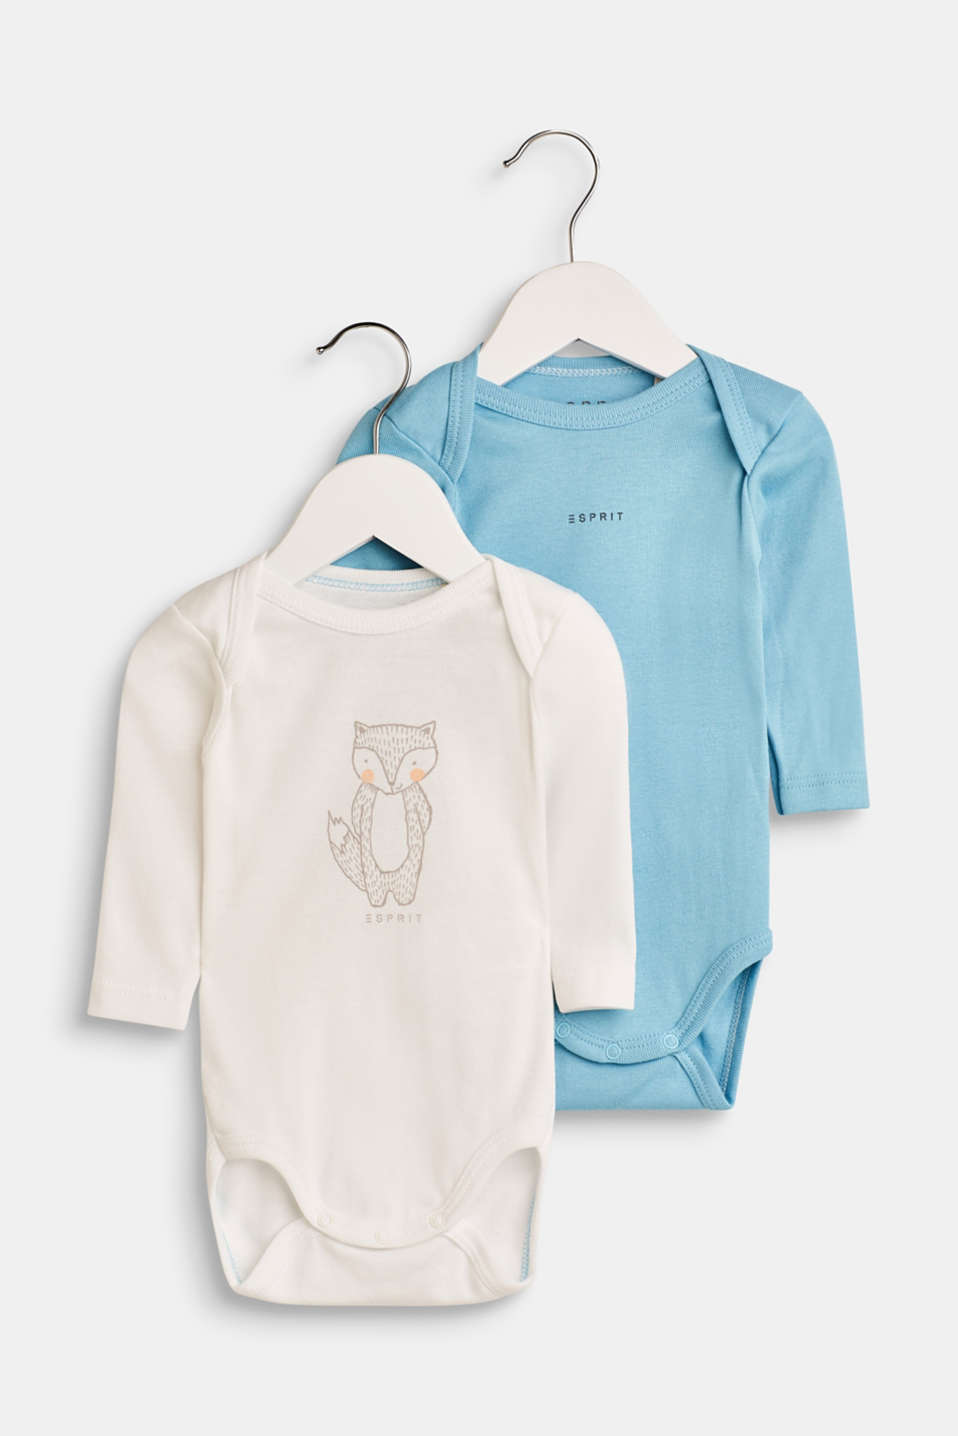 A cosy highlight for the little ones – with a print or plain: soft long sleeve bodies in a practical double pack with soft organic cotton.